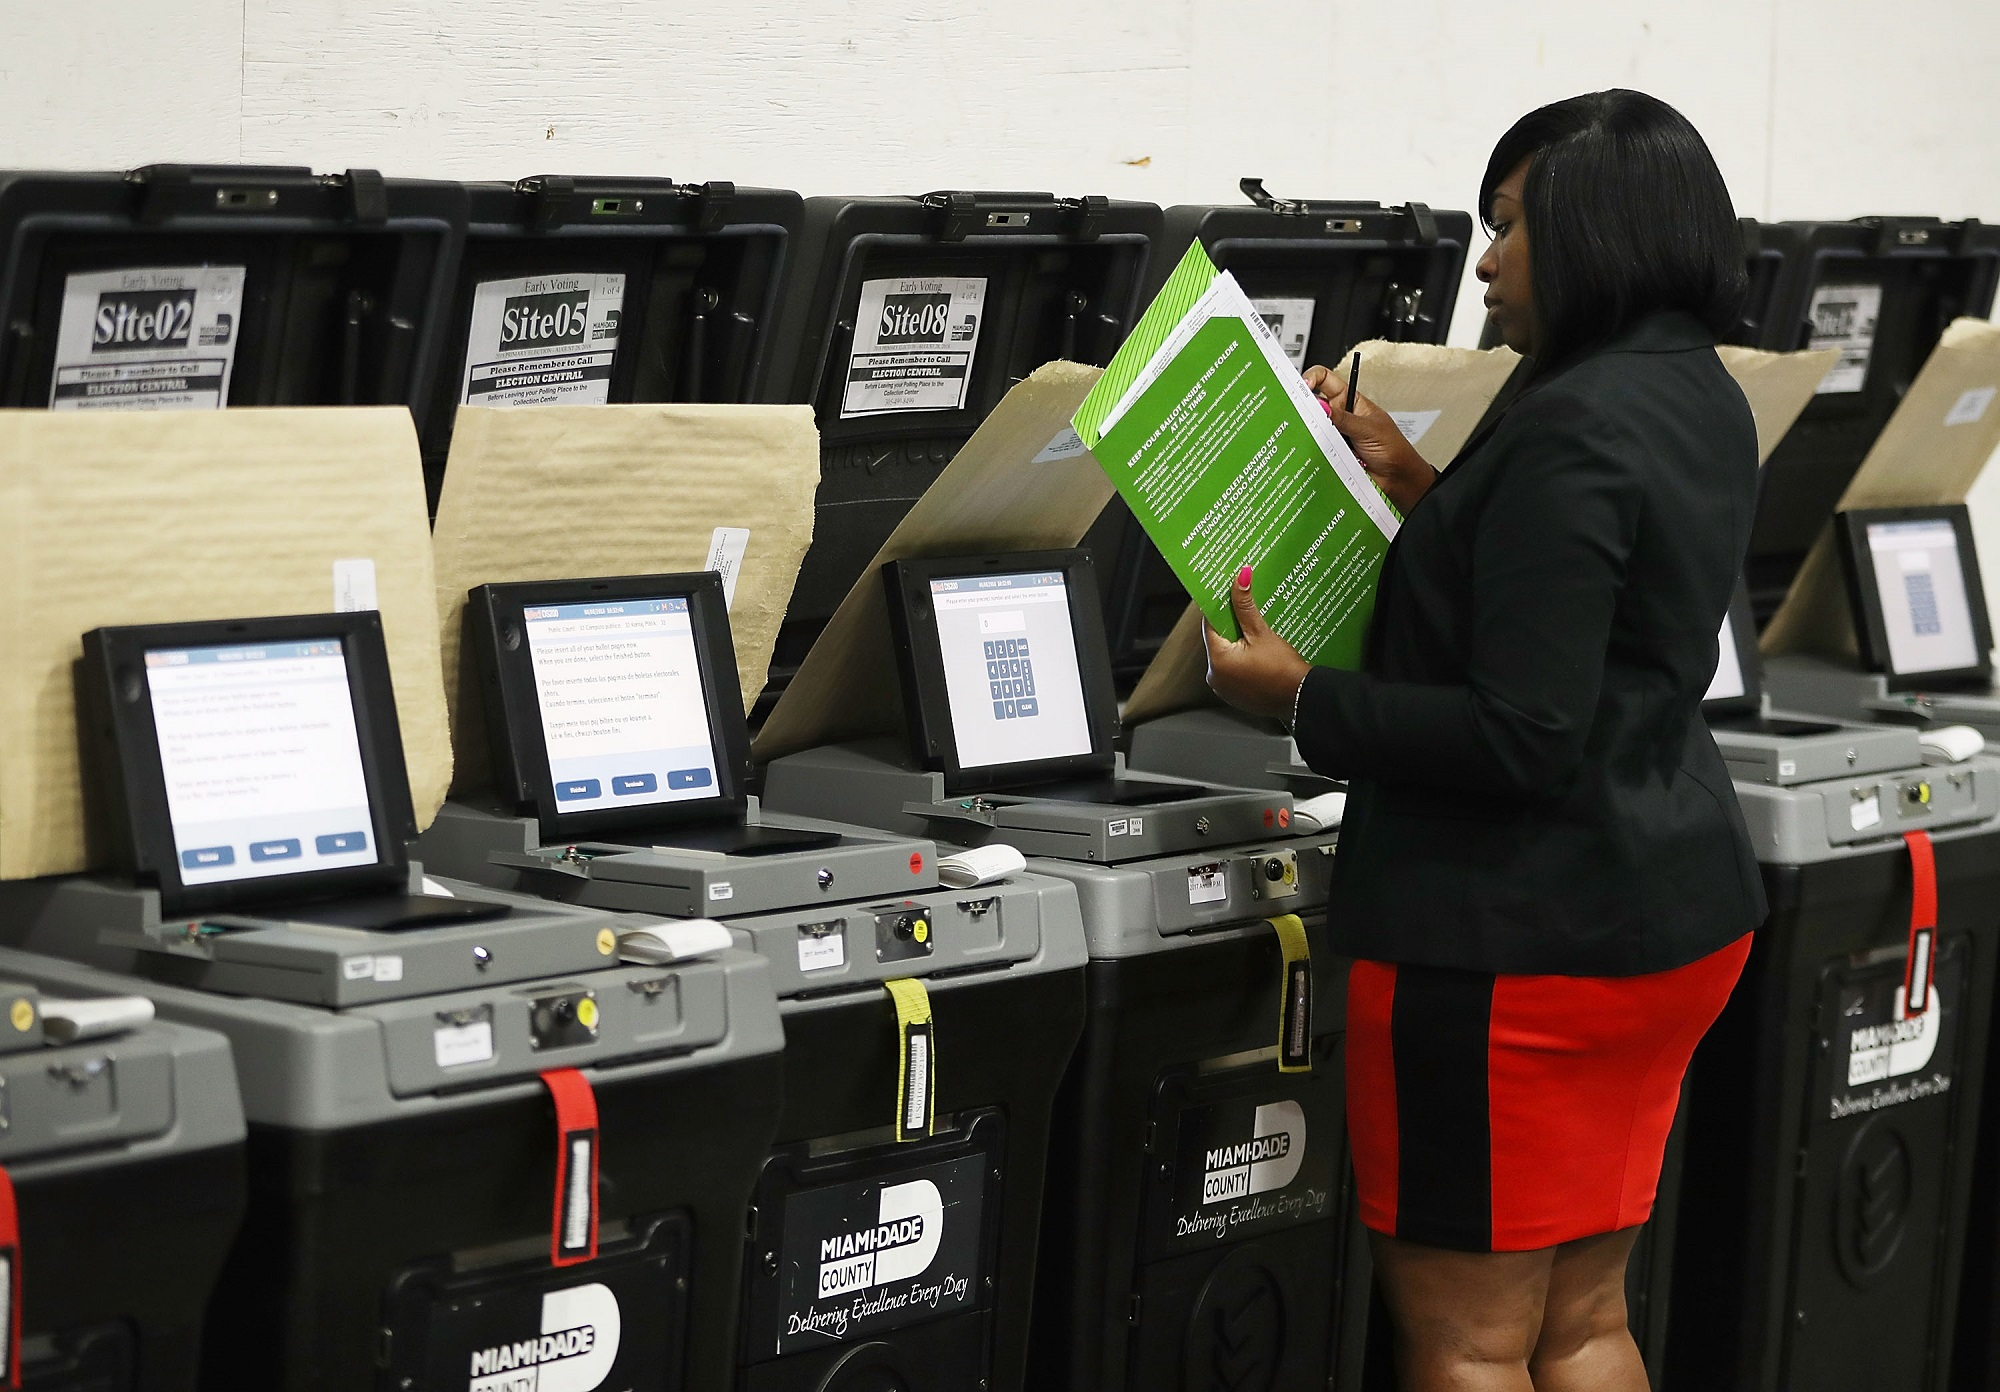 voting machines easily compromised